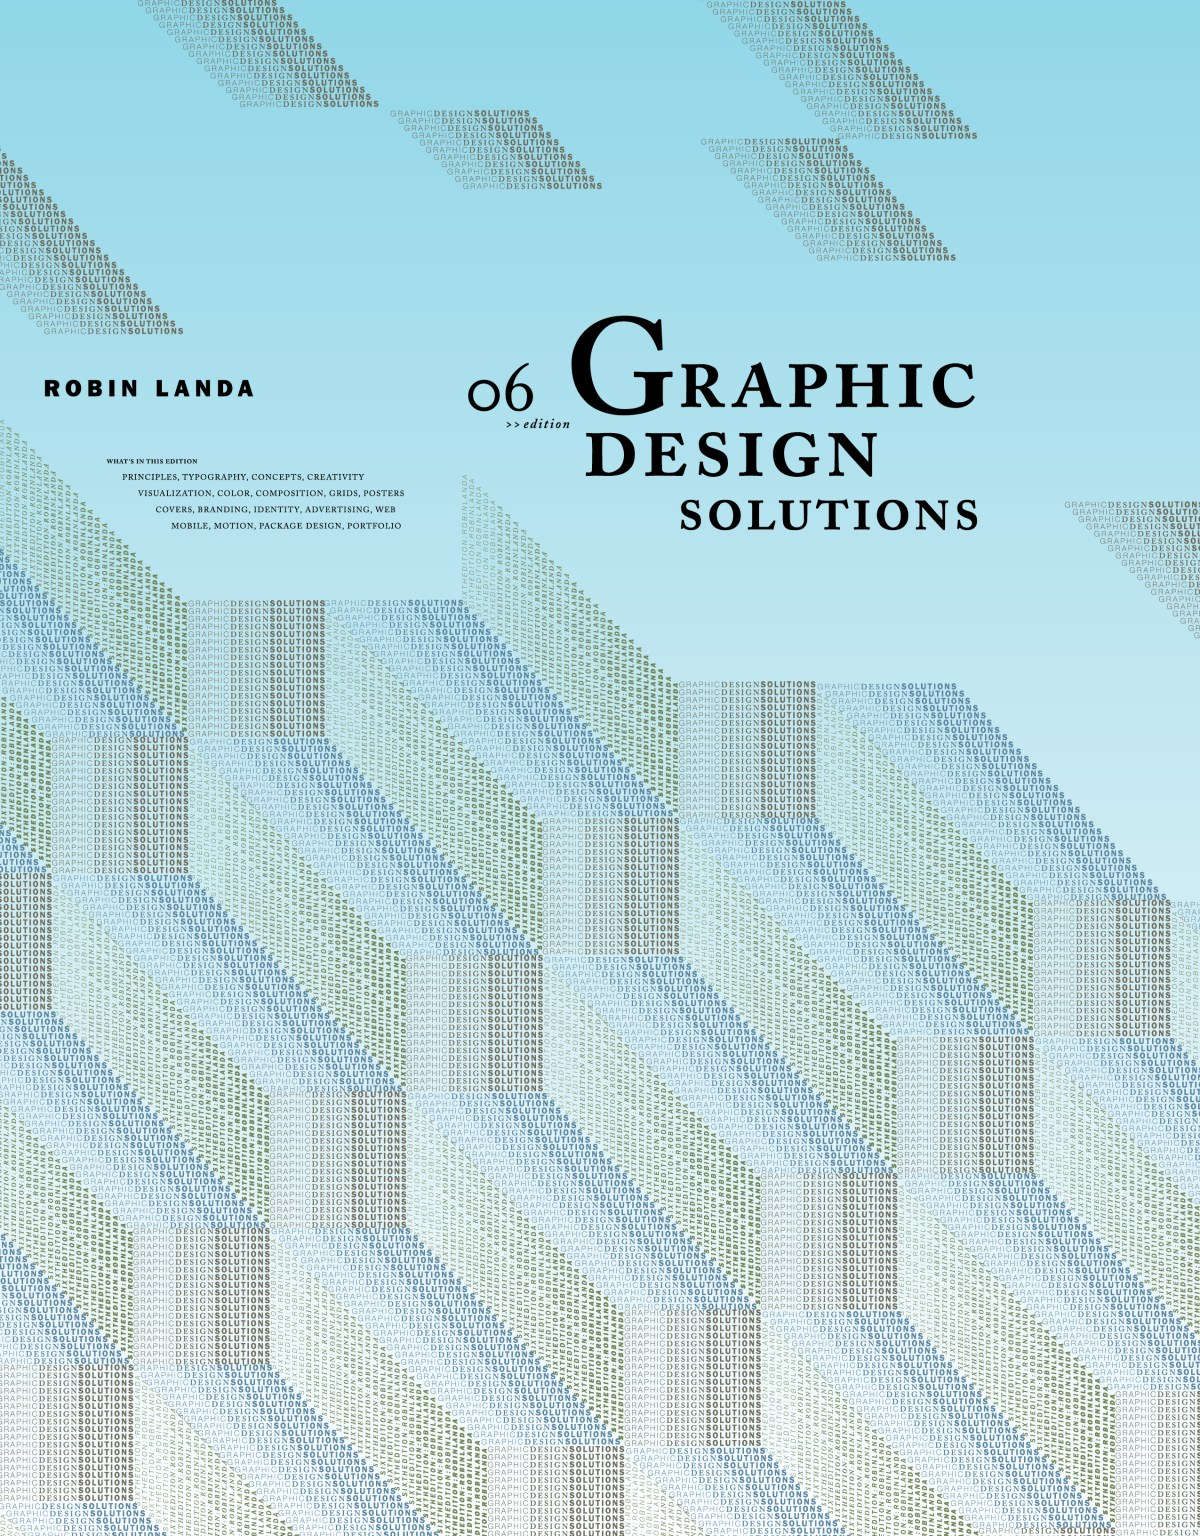 Robin Landa's 6th Edition of Graphic Design Solutions